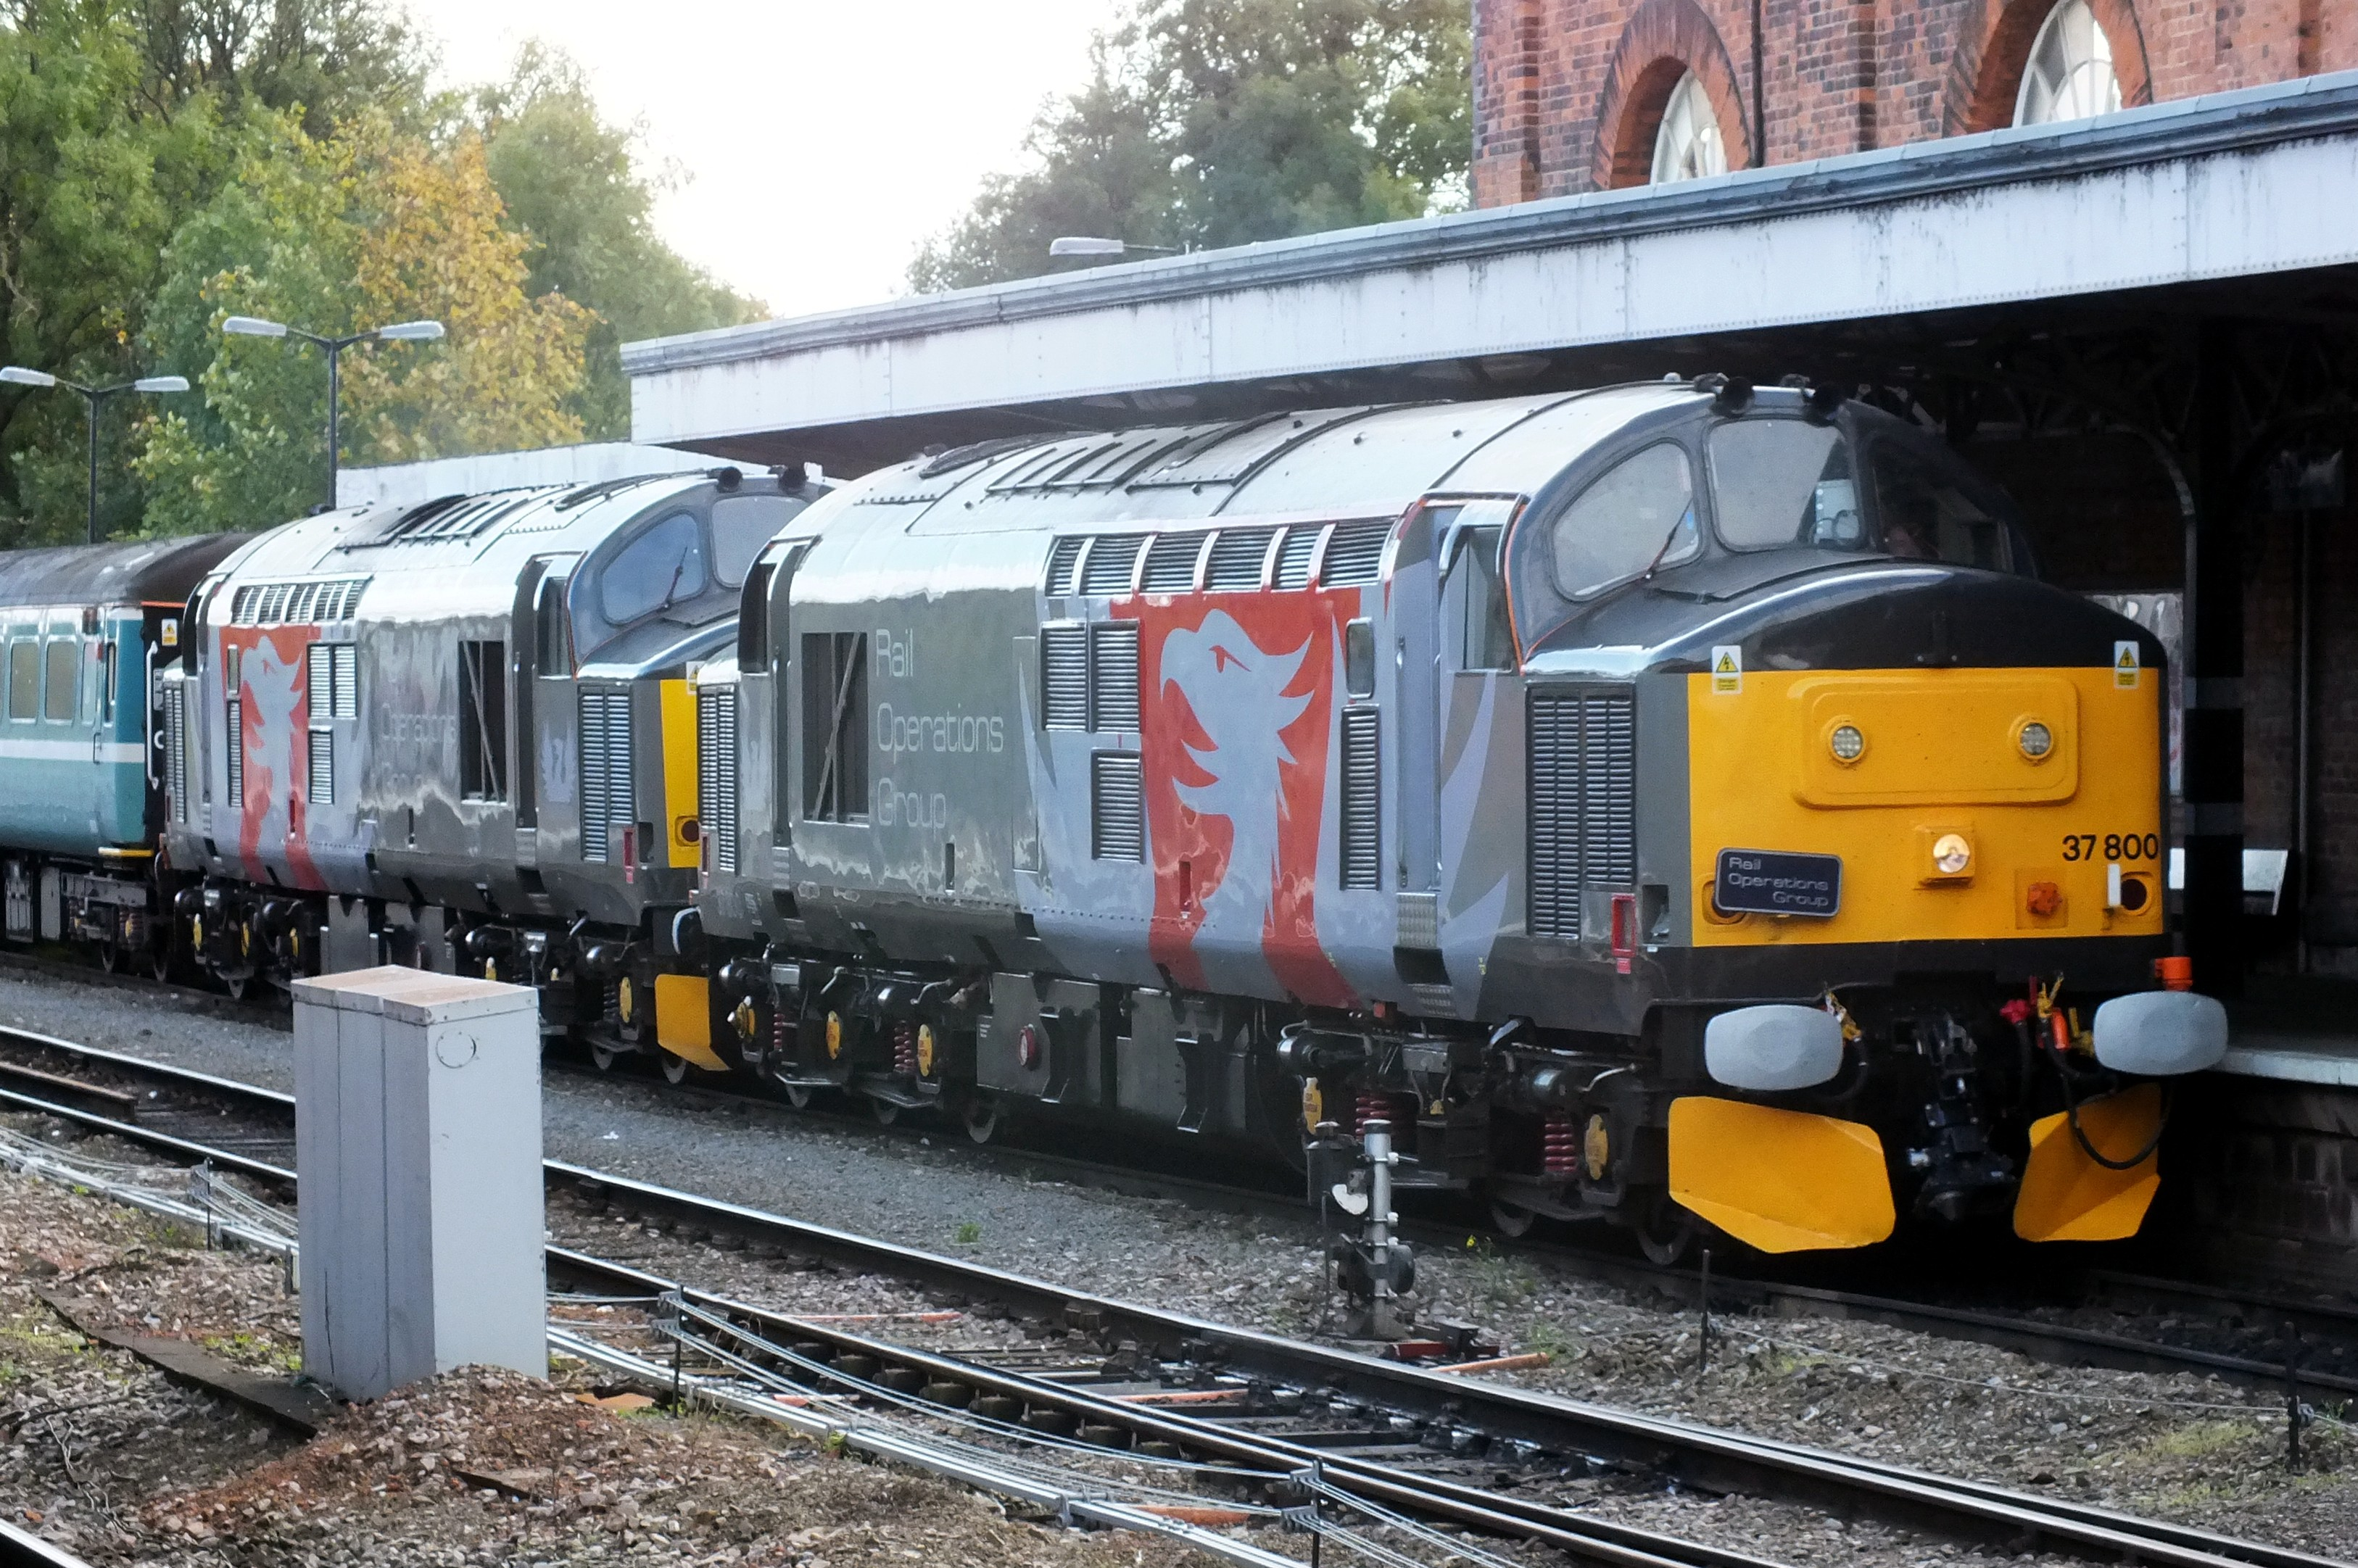 23 October 2016 Shrub Hill 003.jpg